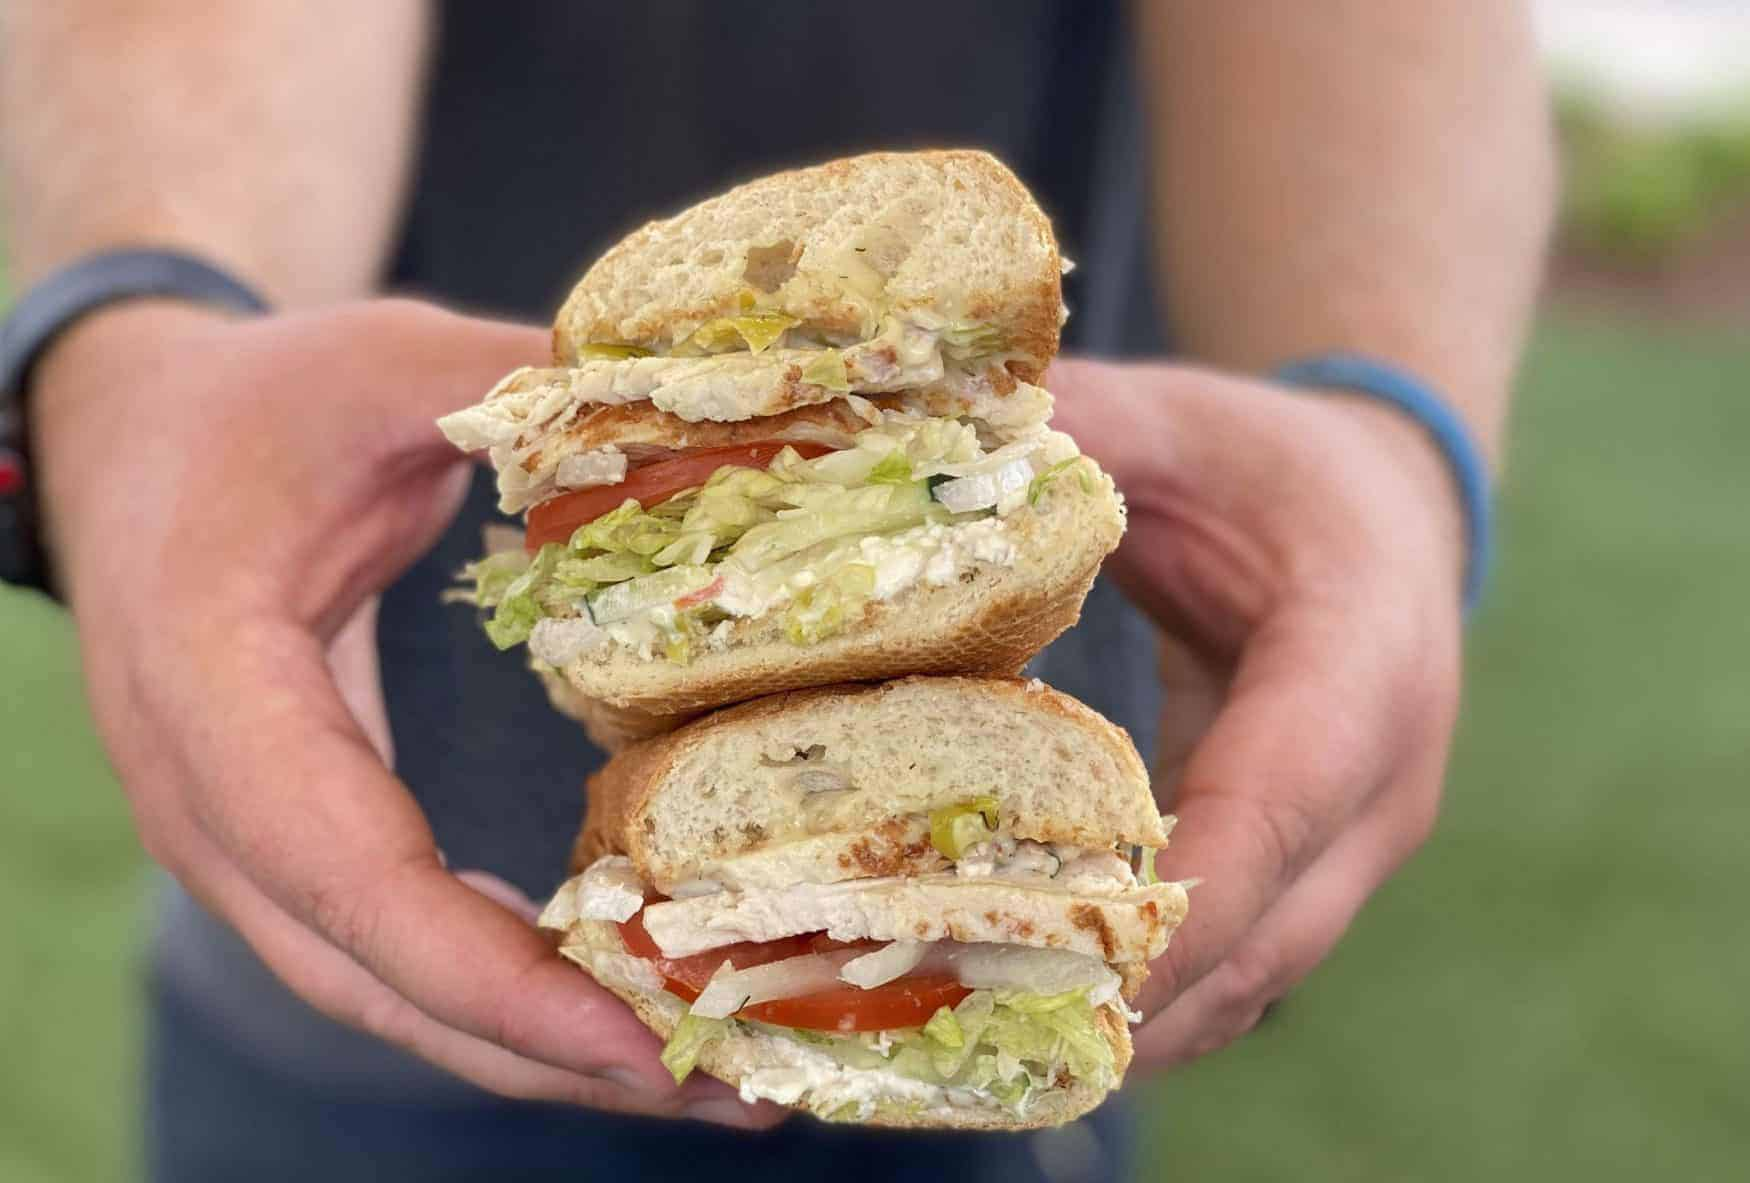 free sub deal from Firehouse Subs